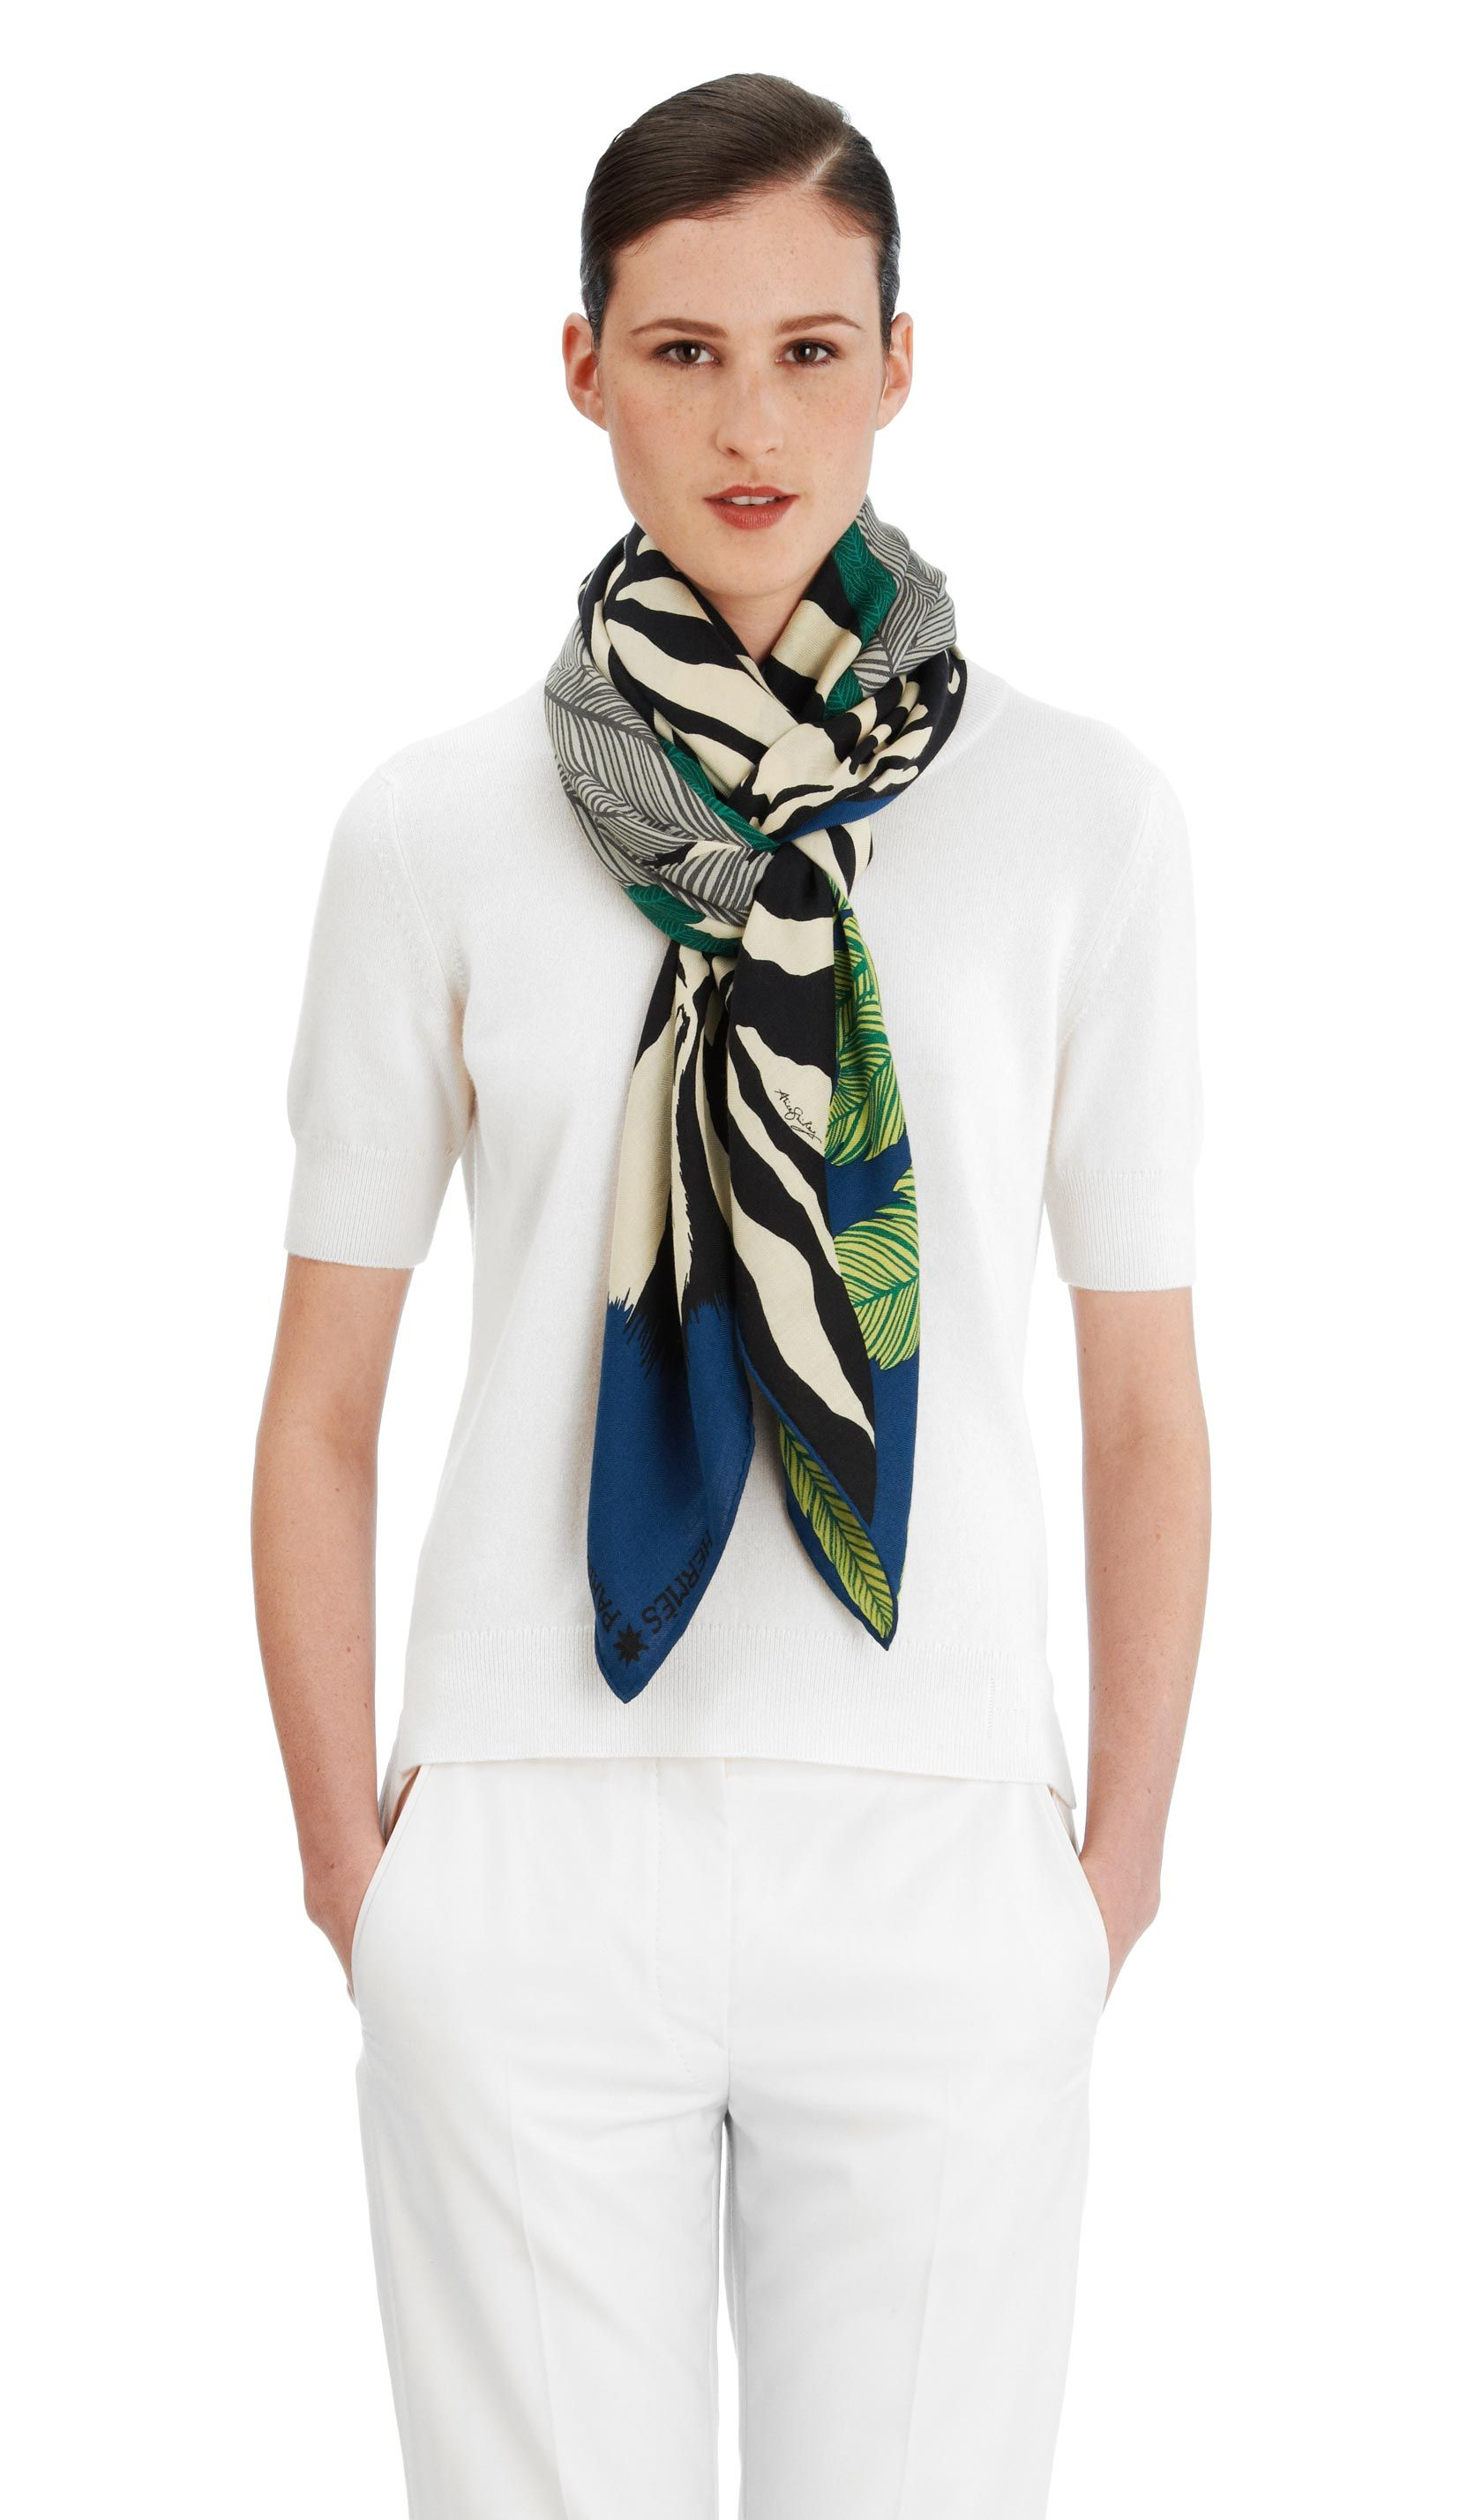 Cashmere Silk Scarf - moment of the haos-3 by VIDA VIDA JiCYU5